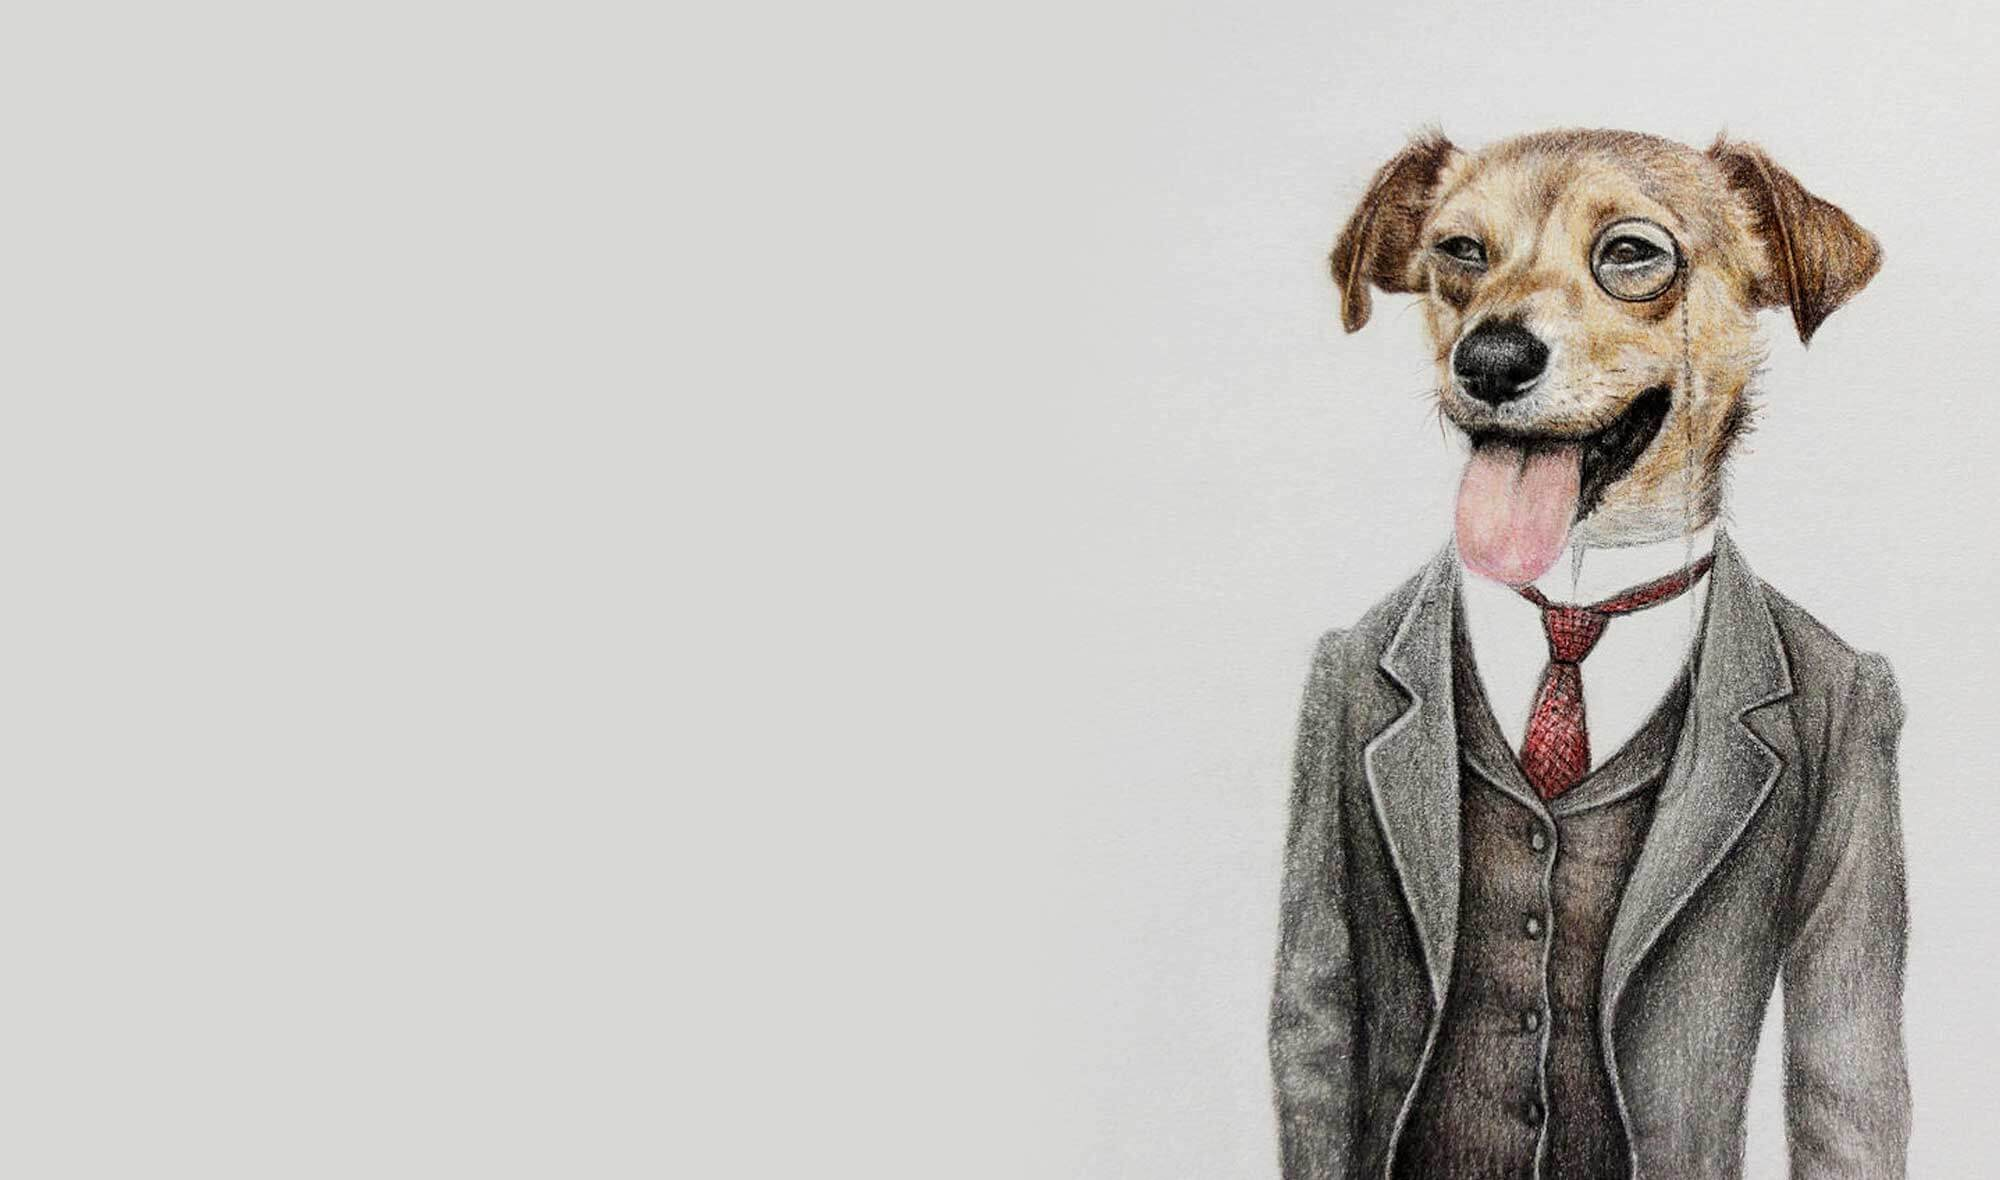 100+ Classic Dog Names – Old-Fashioned, Everlasting Puppy Name Ideas